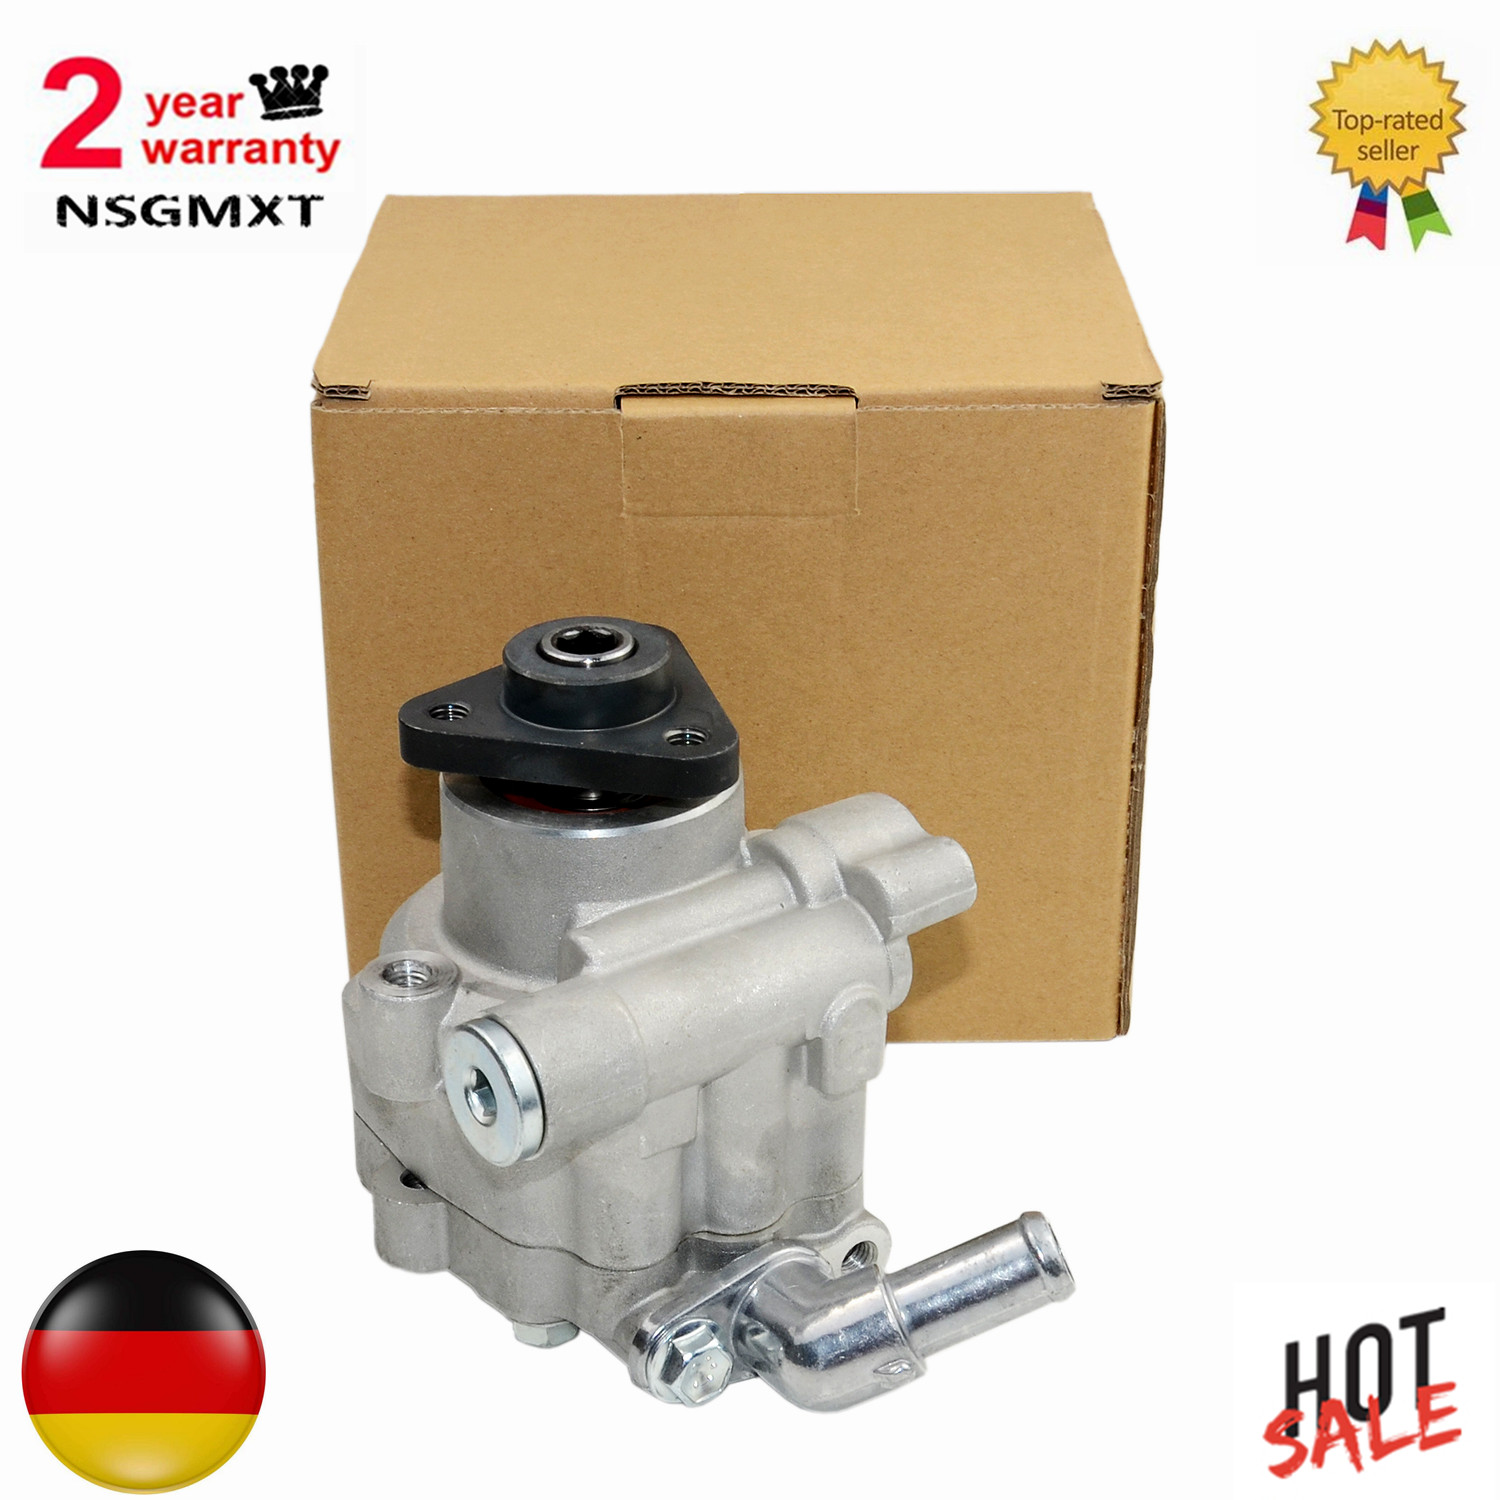 AP01 Power Steering Pump For  VW Amarok Crafter 30 35 Bus Multivan V  Transporter V Bus 7HM 7HN 7HF 7EF 7EM 7EN 1.9 TDI|  - title=